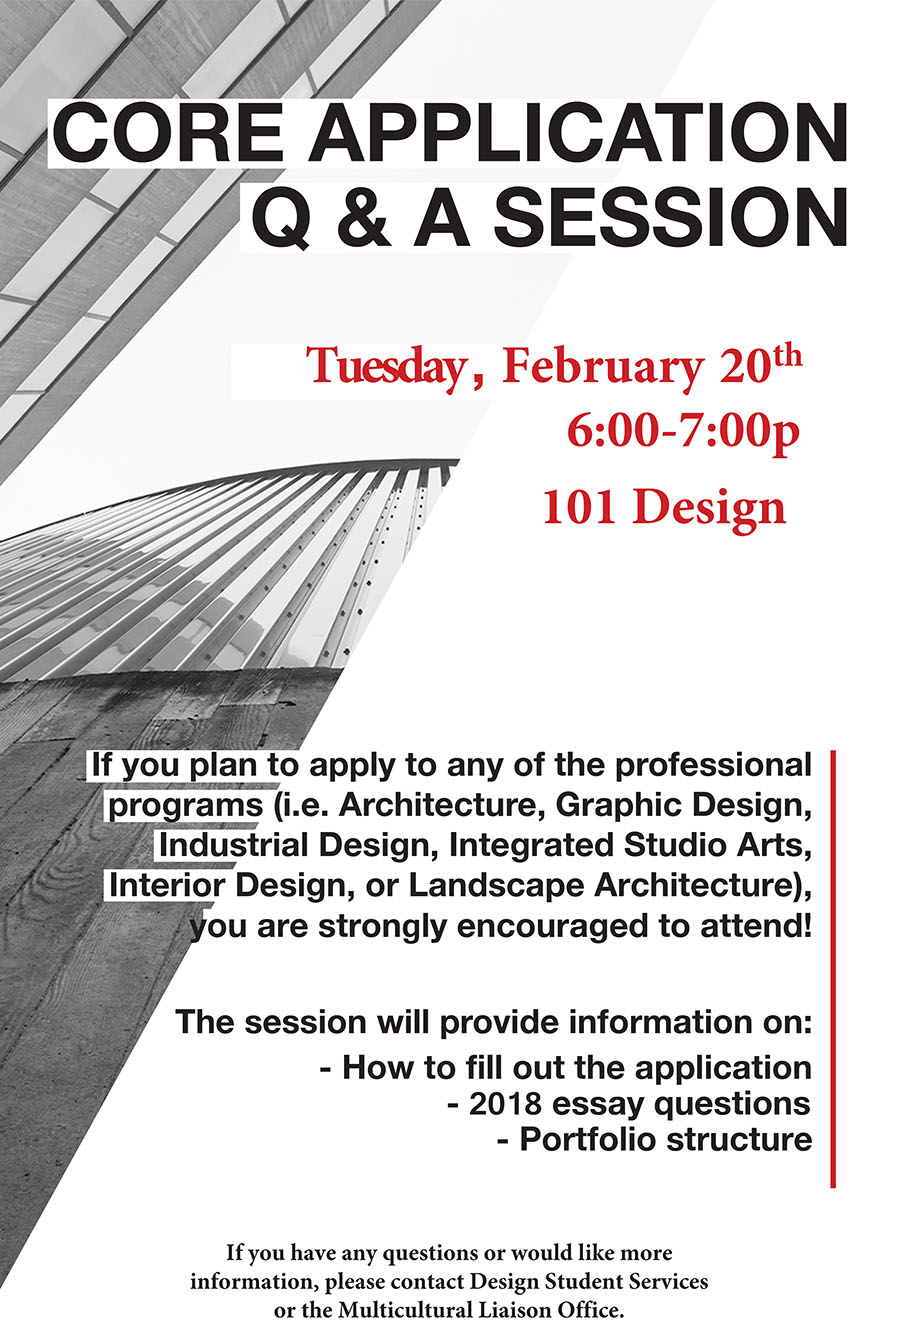 Core Application Information Session Spring 2018